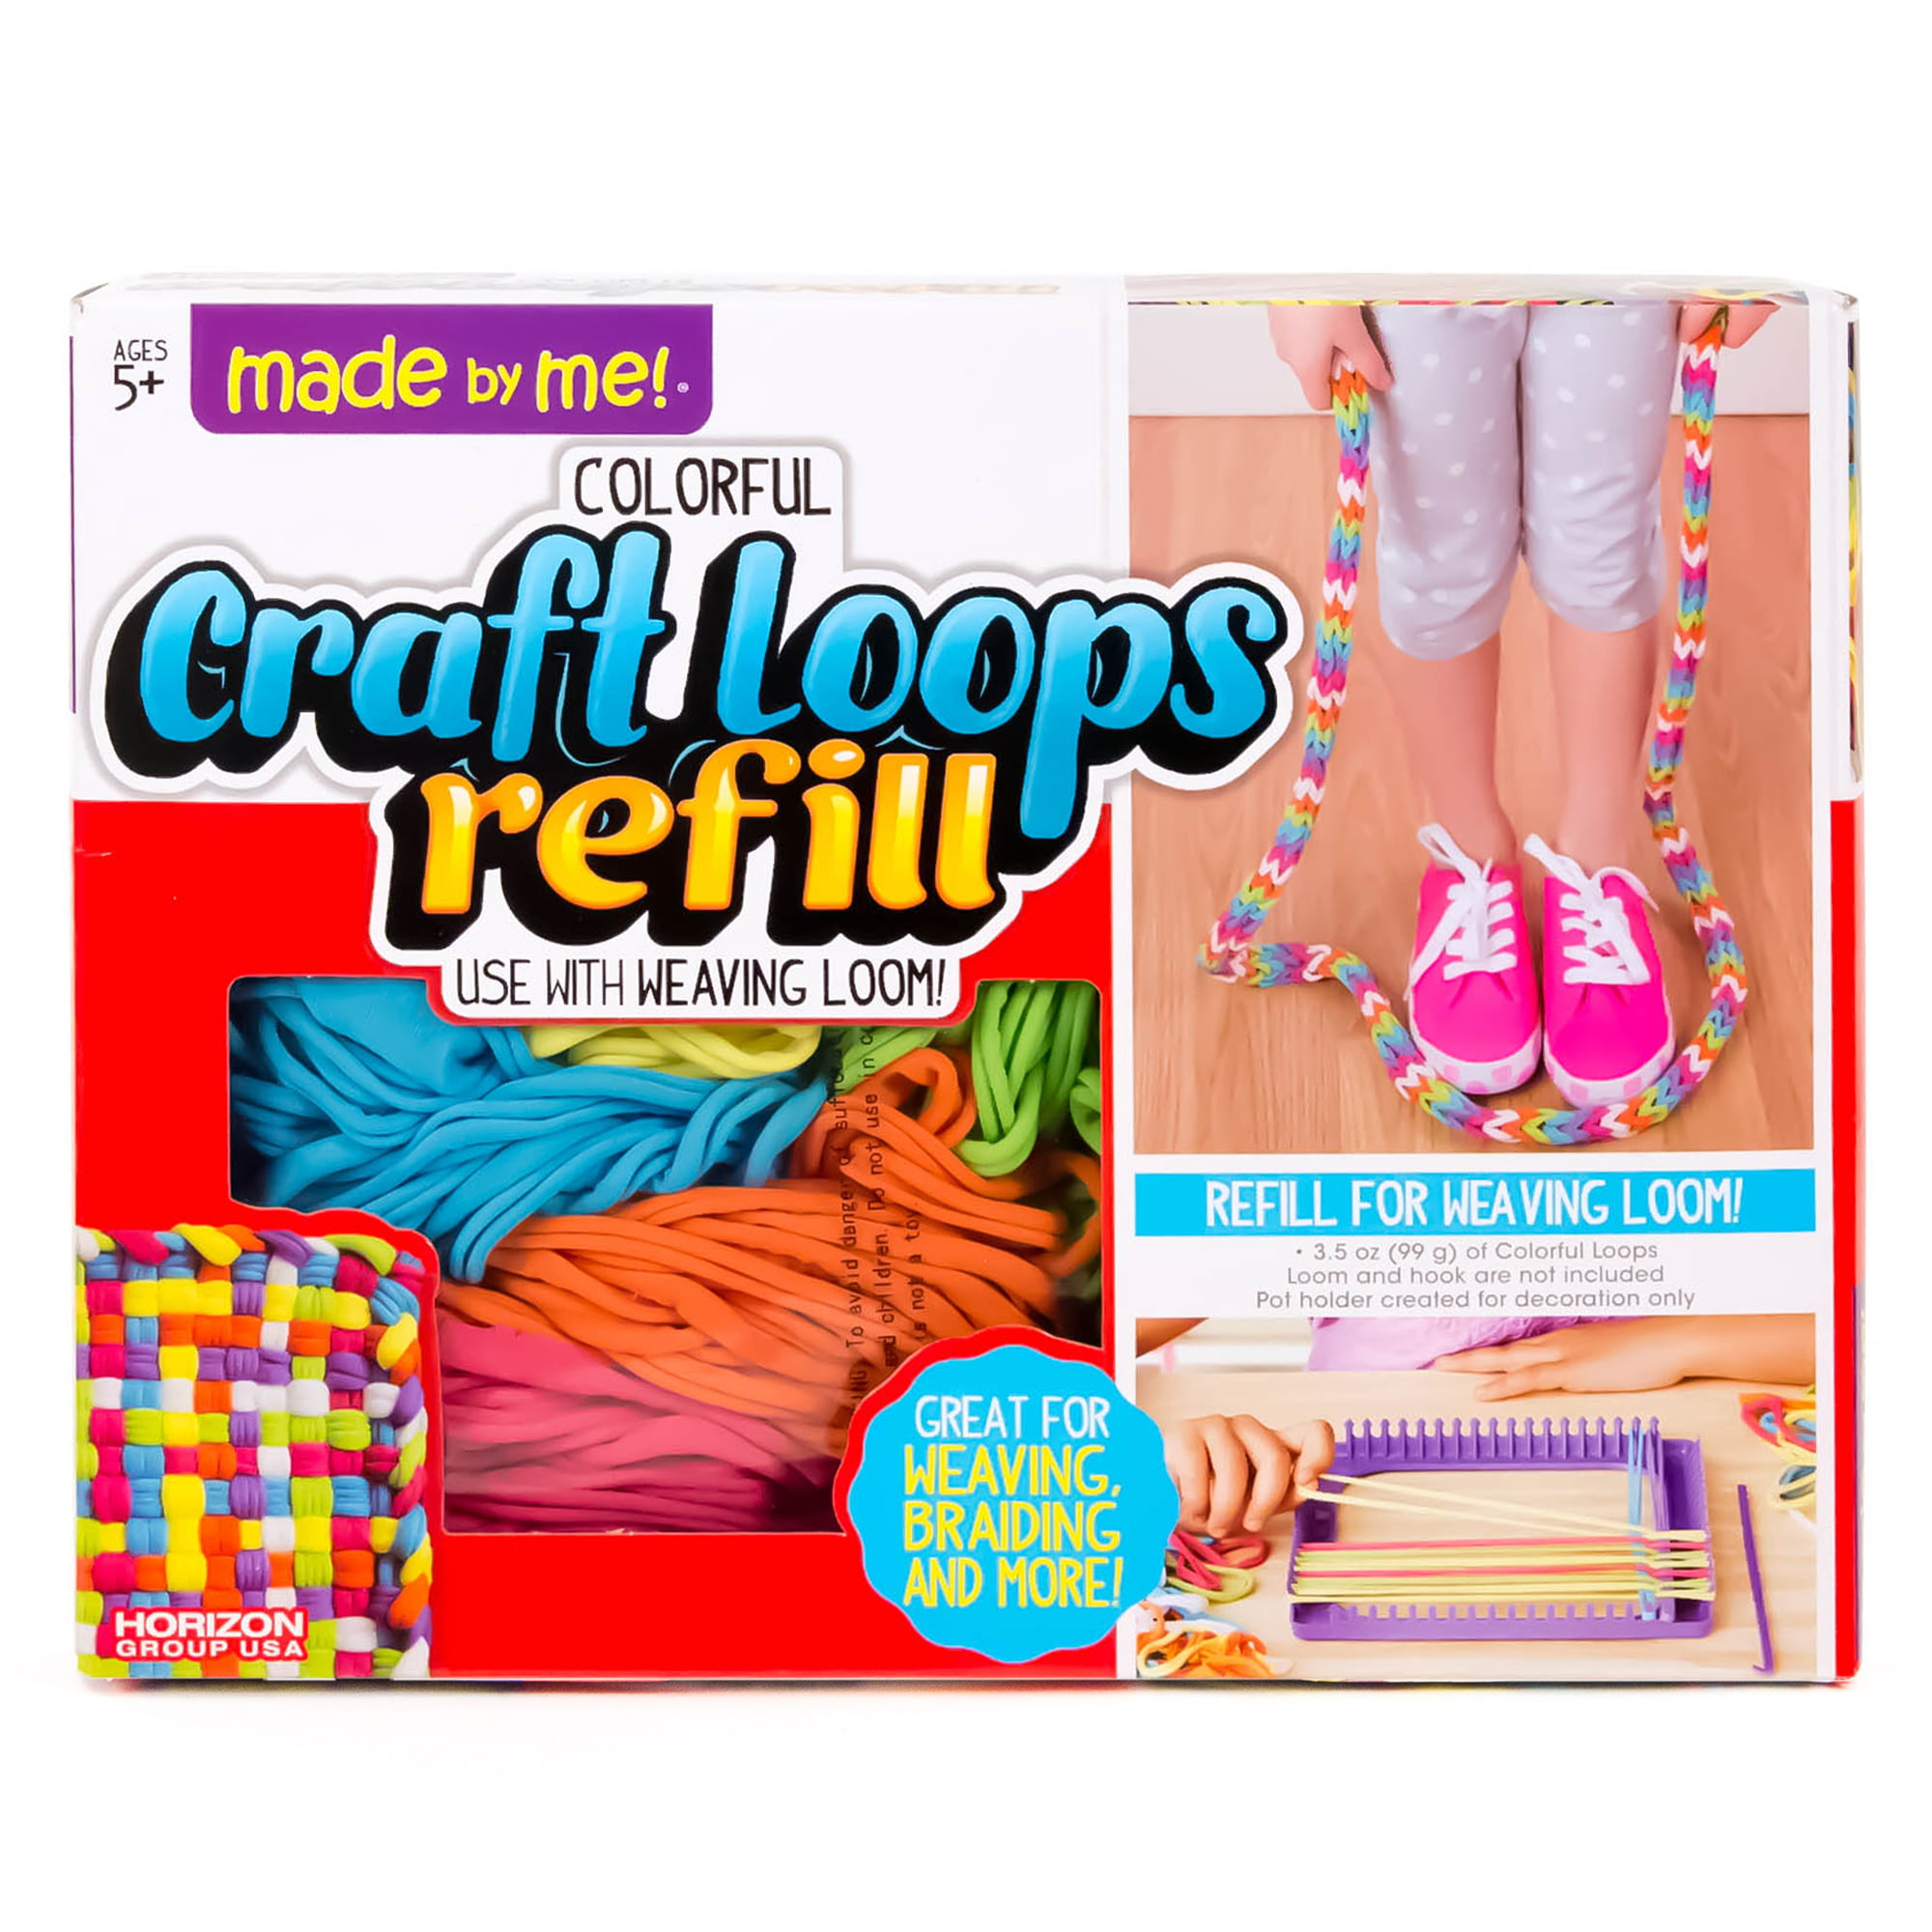 made by me craft loops refill by horizon group usa walmart